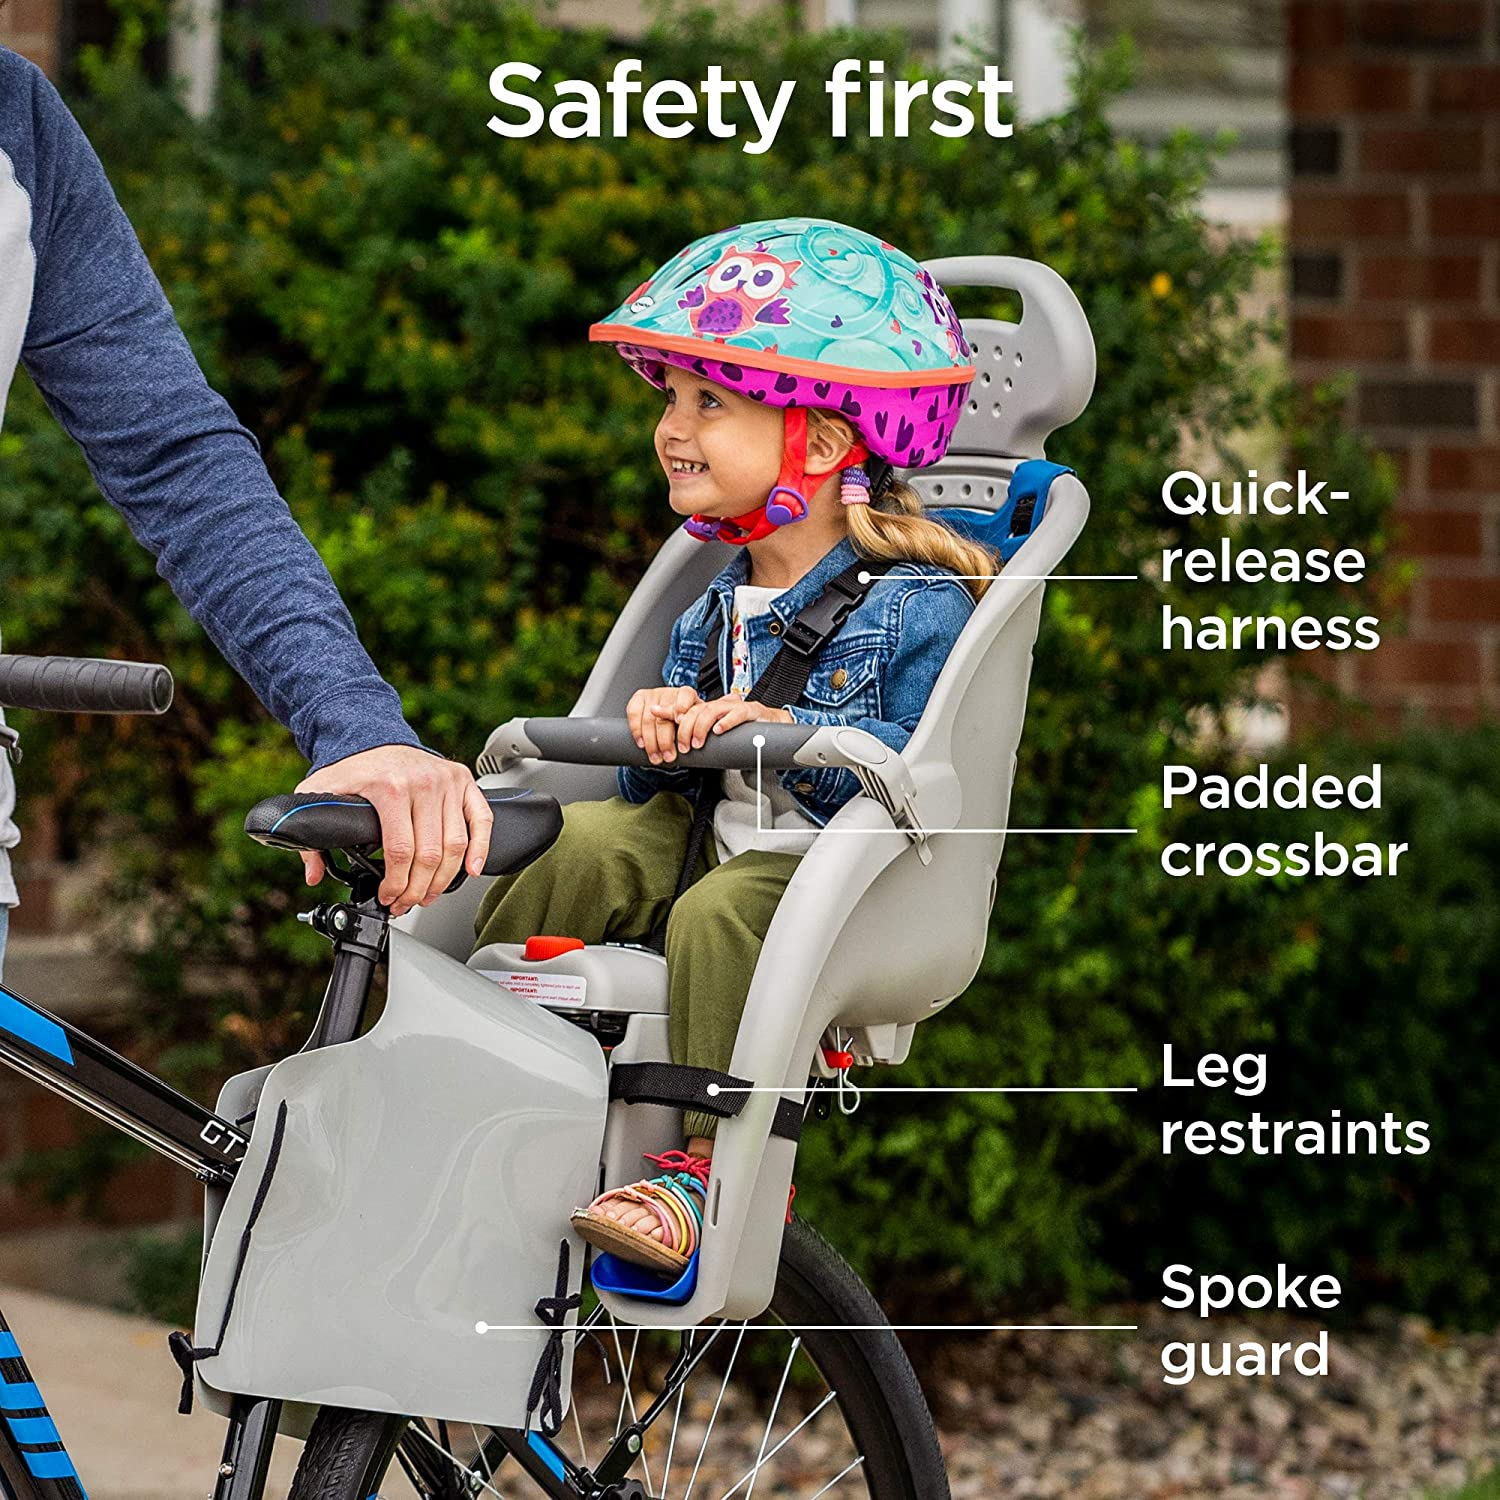 Bicycle Seat For Kids Lightweight Bike Seats For Children Multiple Color Options Comfortable Mounted Child Toddlers Three-point Seat Belt Protection For Under 6 Years Old Boys Girls